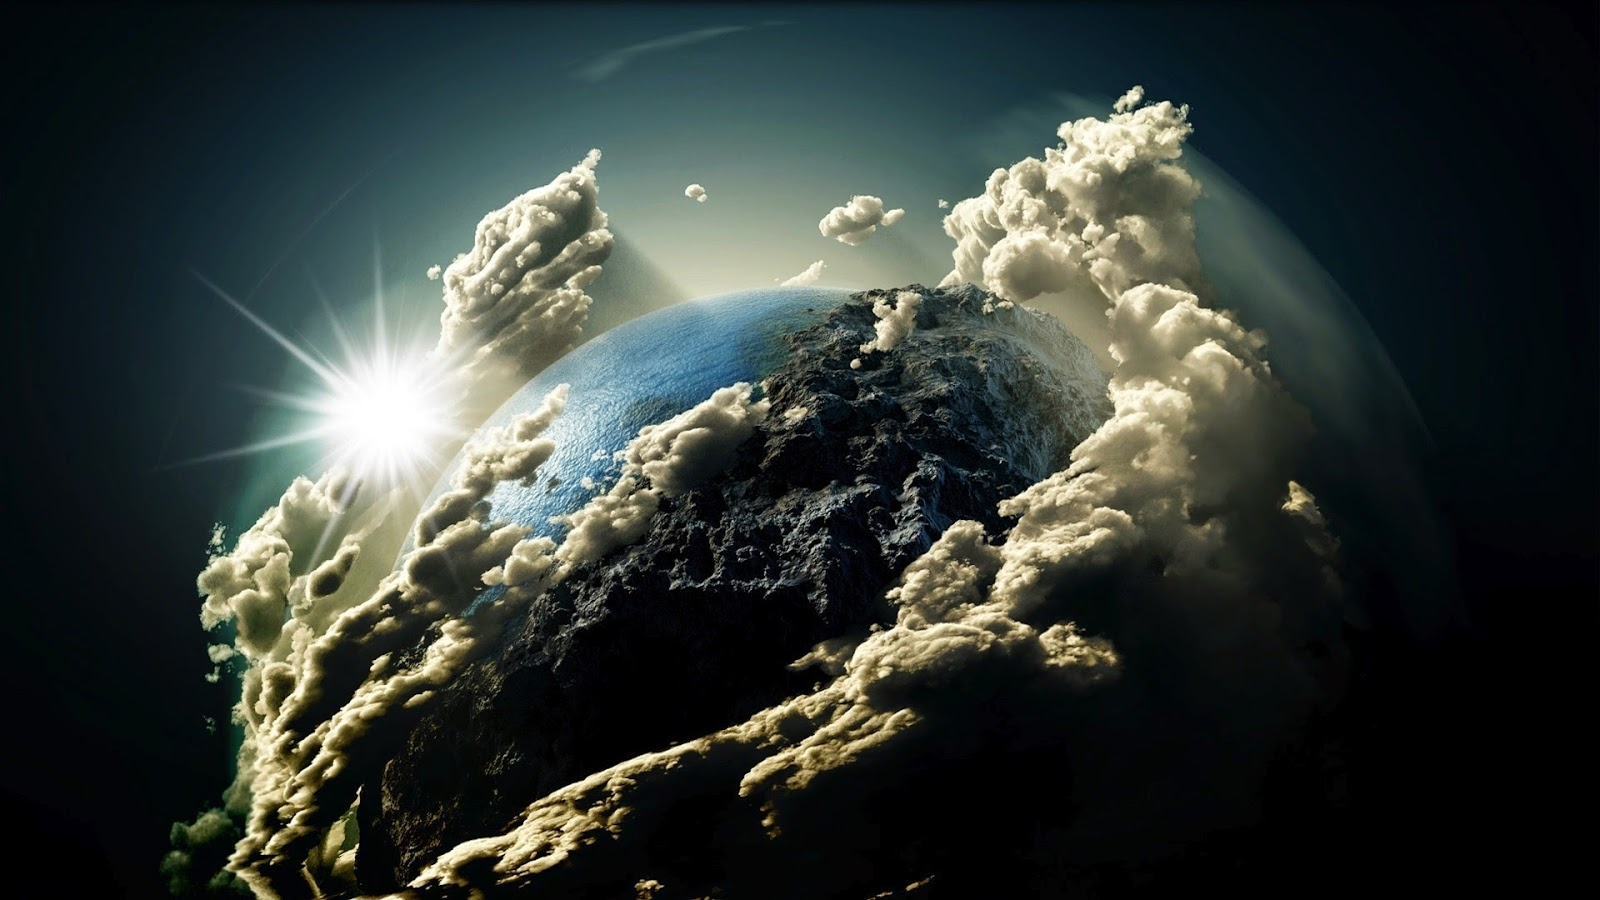 10 Latest Cool Laptop Backgrounds Space Full Hd 1920 1080: Earth - HD Wallpapers